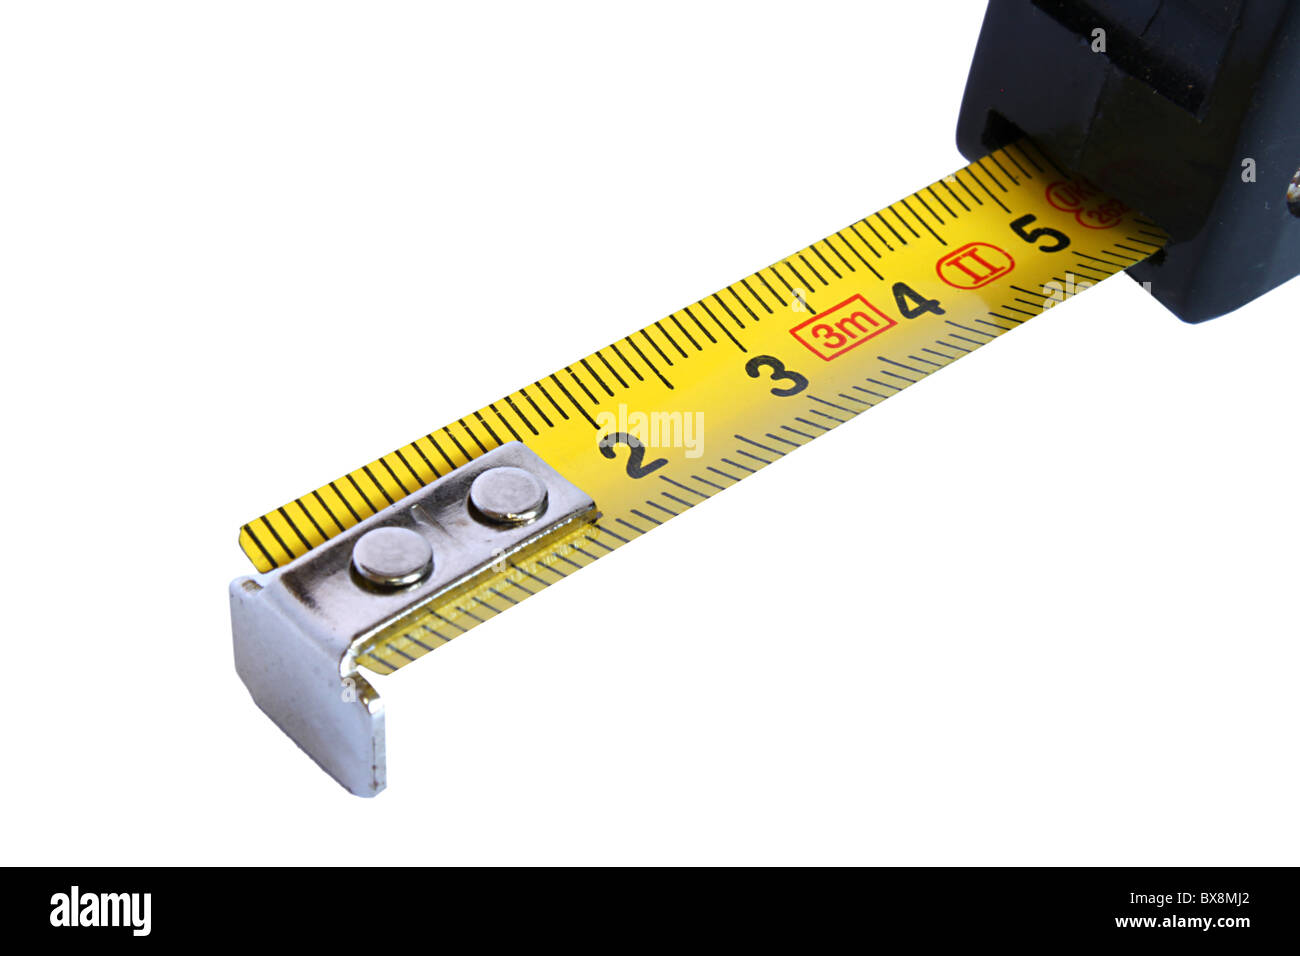 Yellow Retractable Steel Tape measure on white background - Stock Image